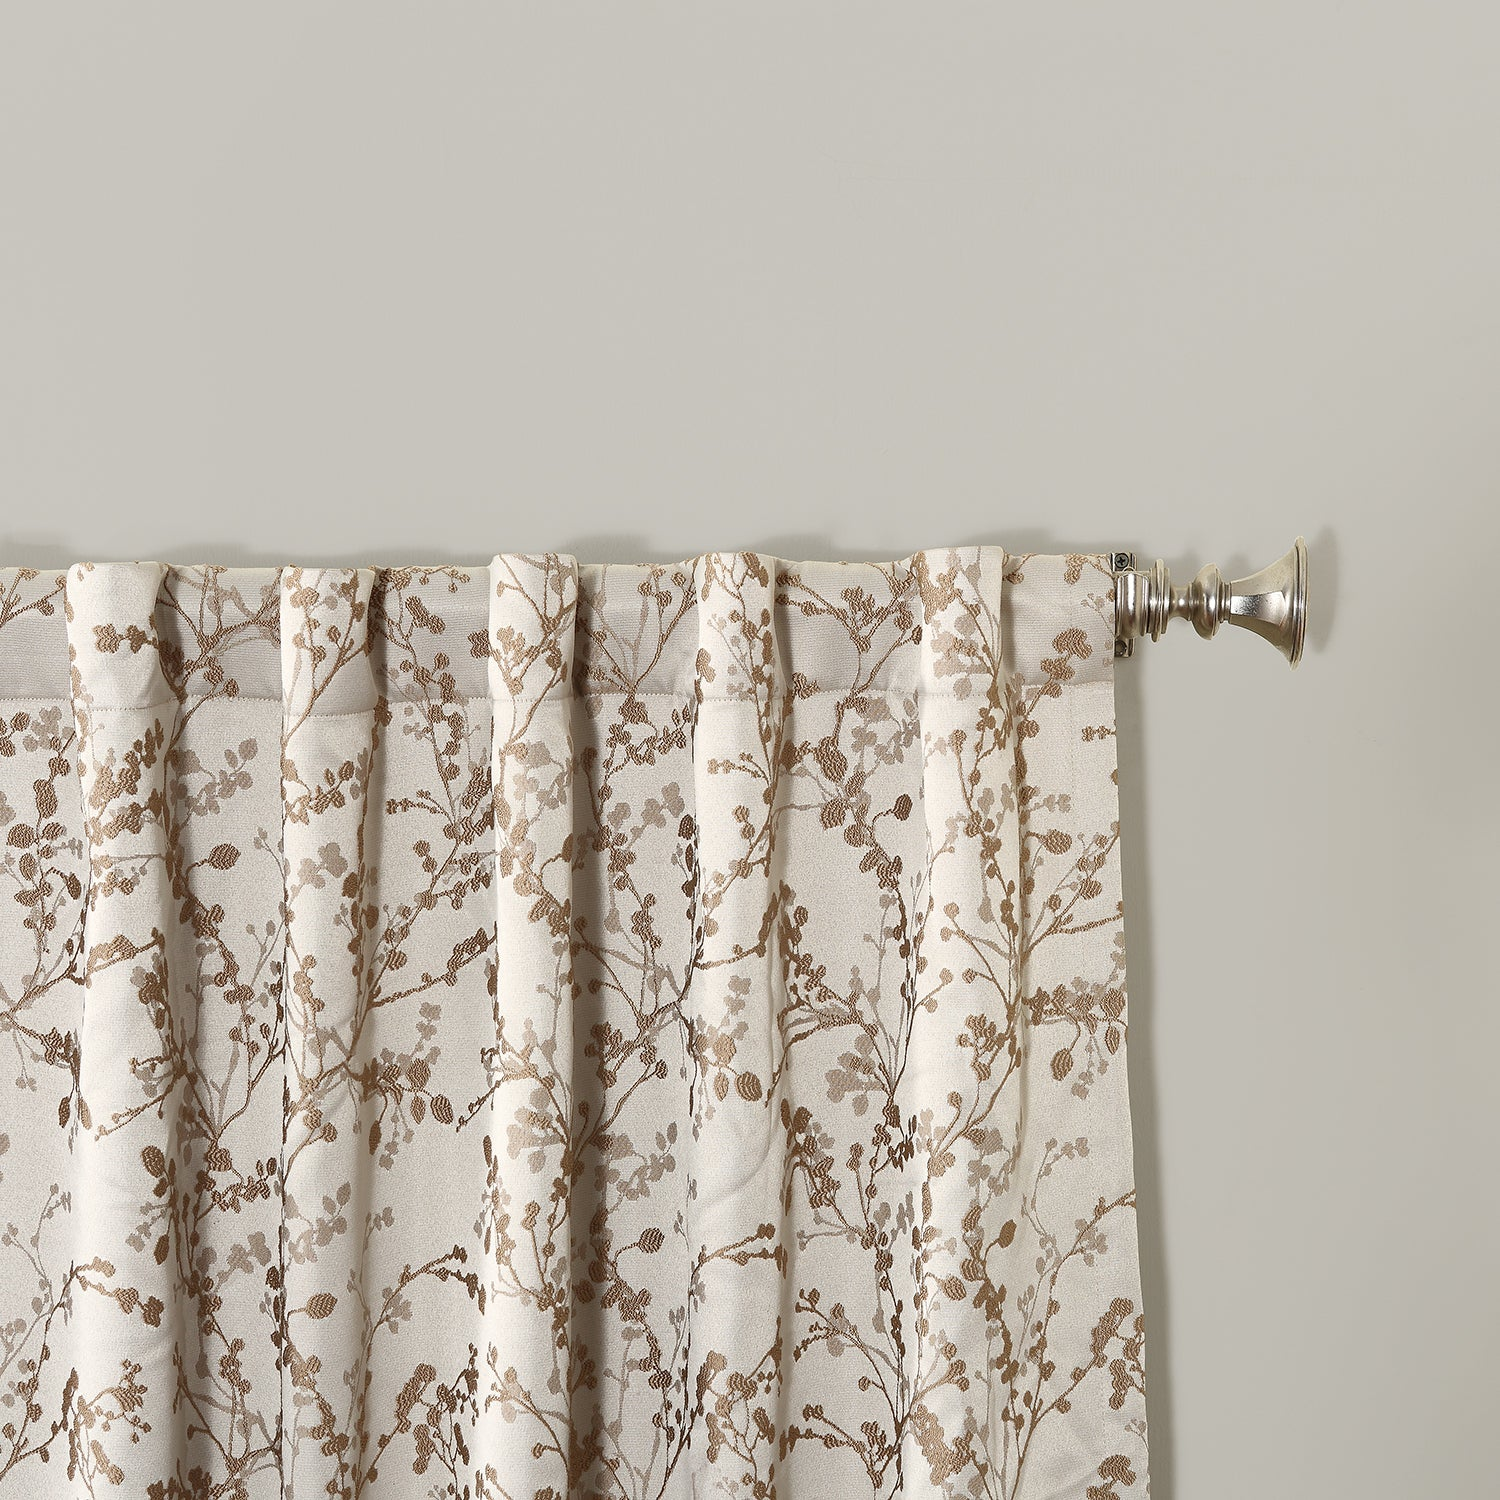 Shop Sun Zero Kavala Blackout Lined Back Tab Single Curtain Panel On Sale Free Shipping On Orders Over